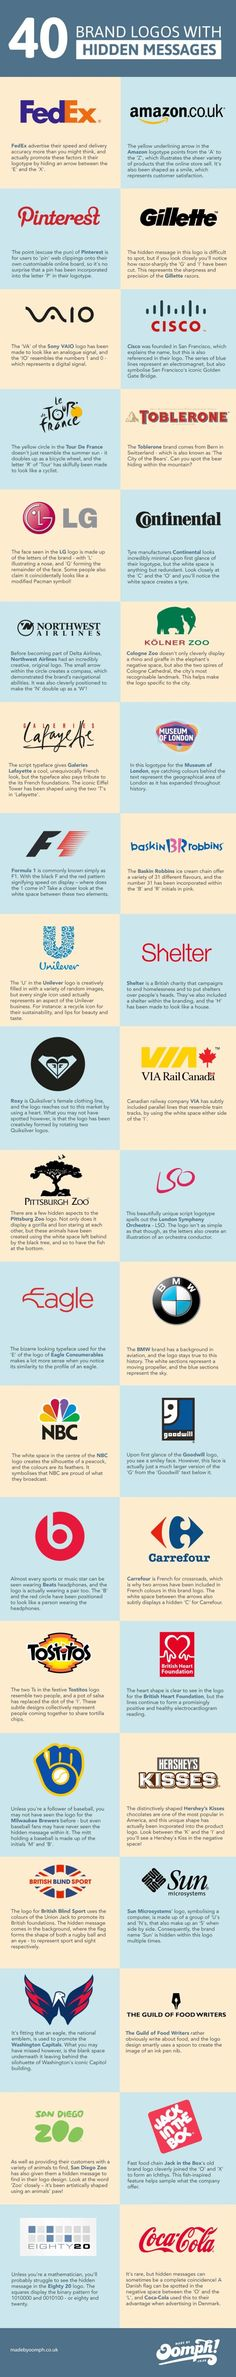 The hidden meaning behind 40 famous logos